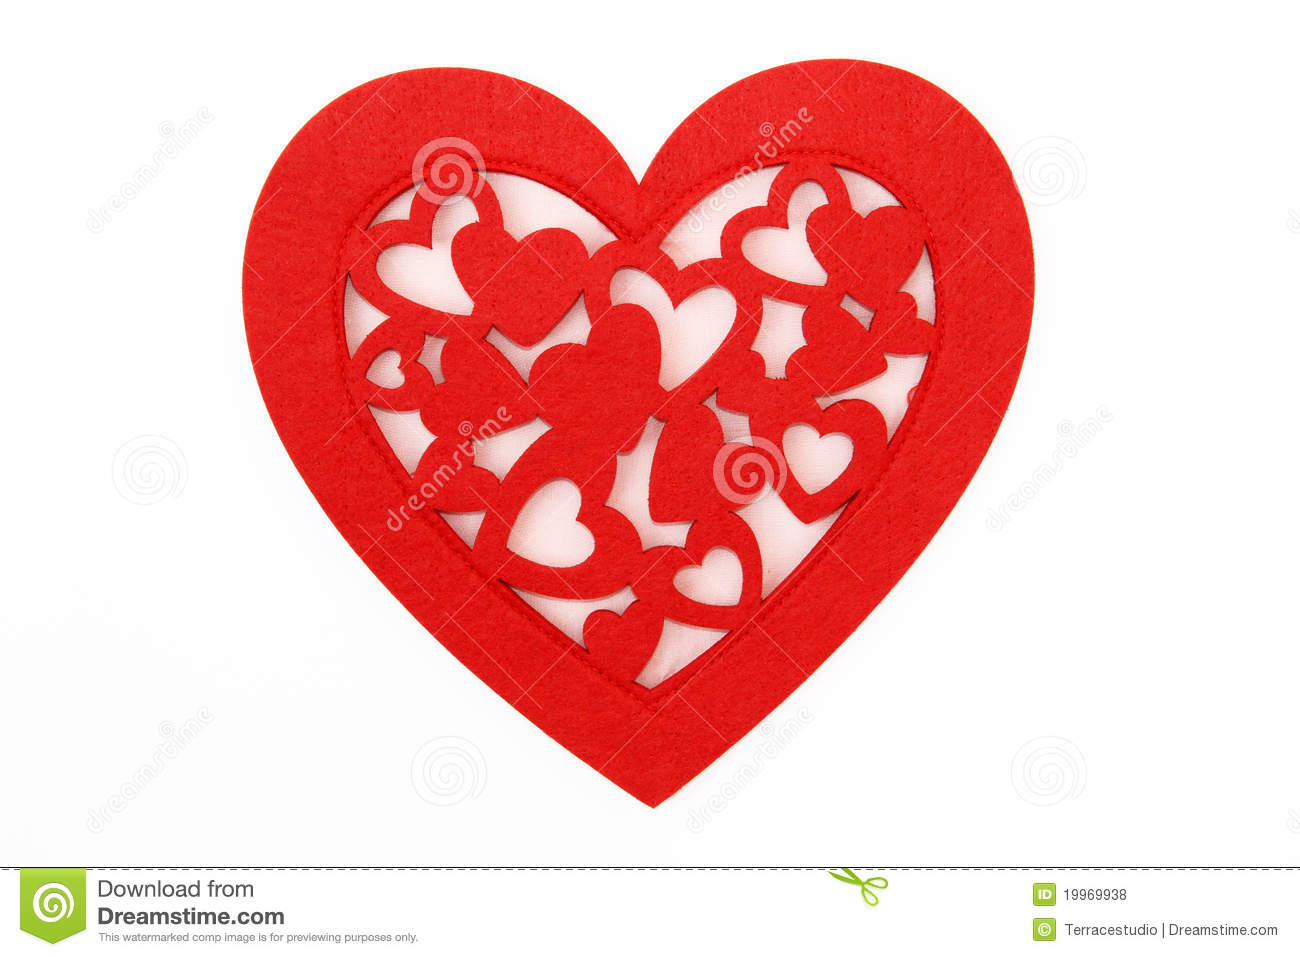 Fancy Red Heart On White Background Royalty Free Stock ...